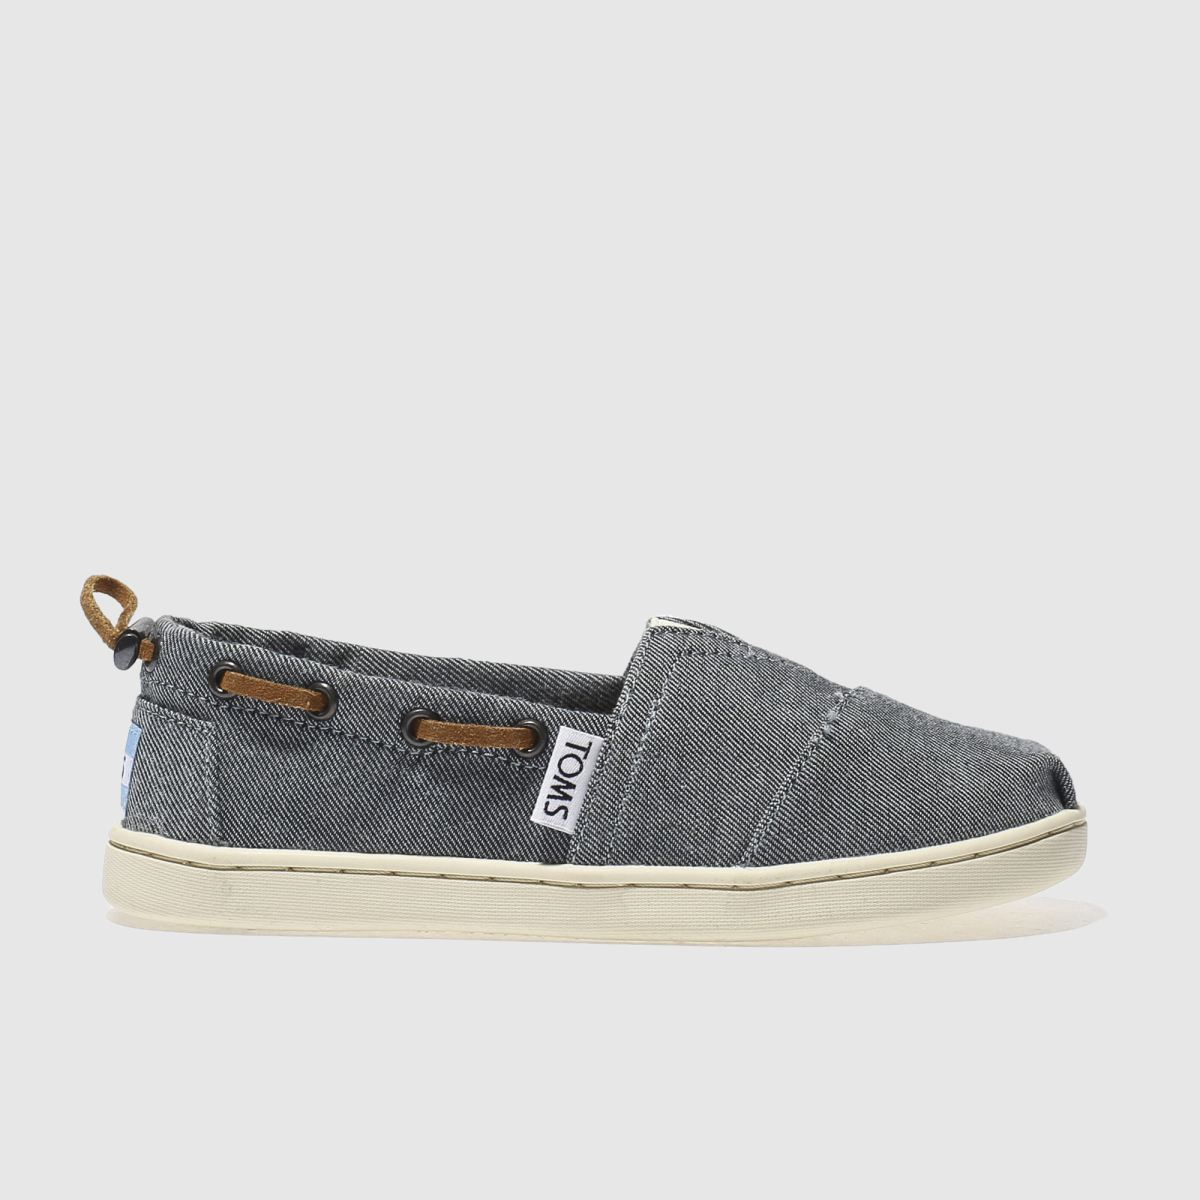 toms navy bimini Junior Shoes